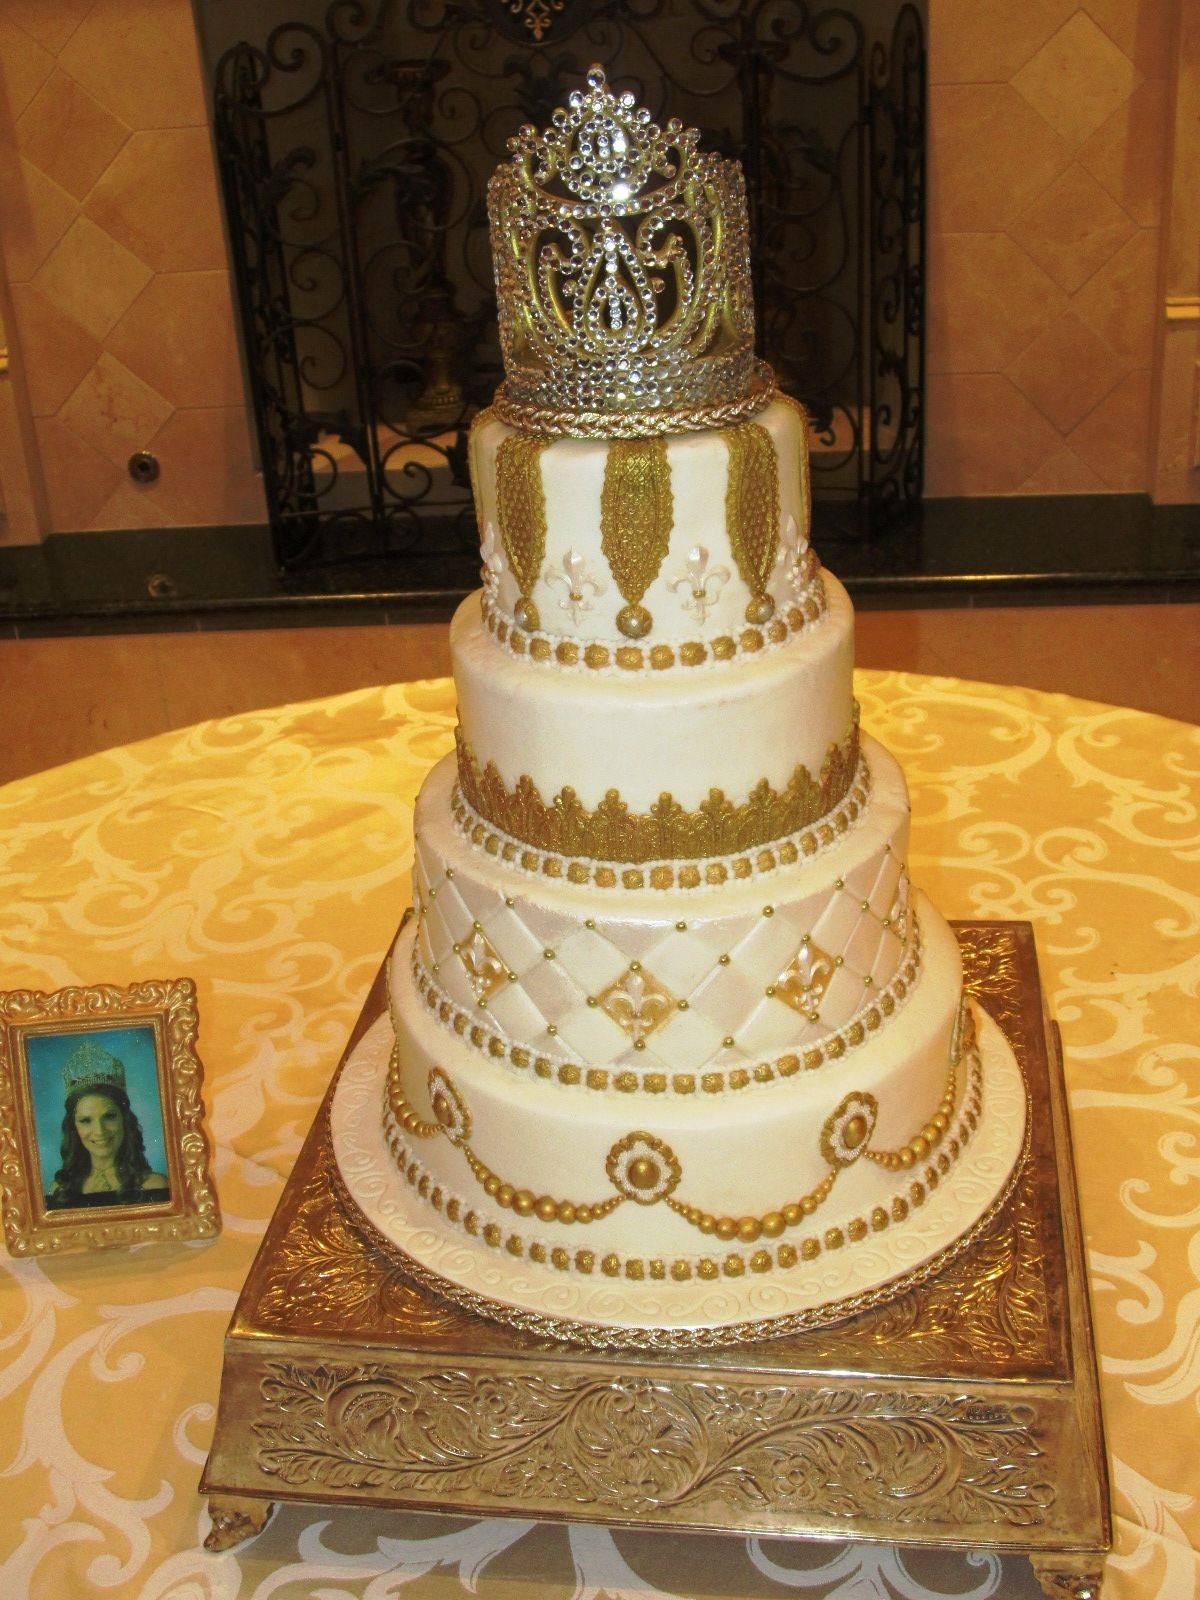 Queen Cleopatra Cake - Cake was made for the Queen of the Cleopatra ...